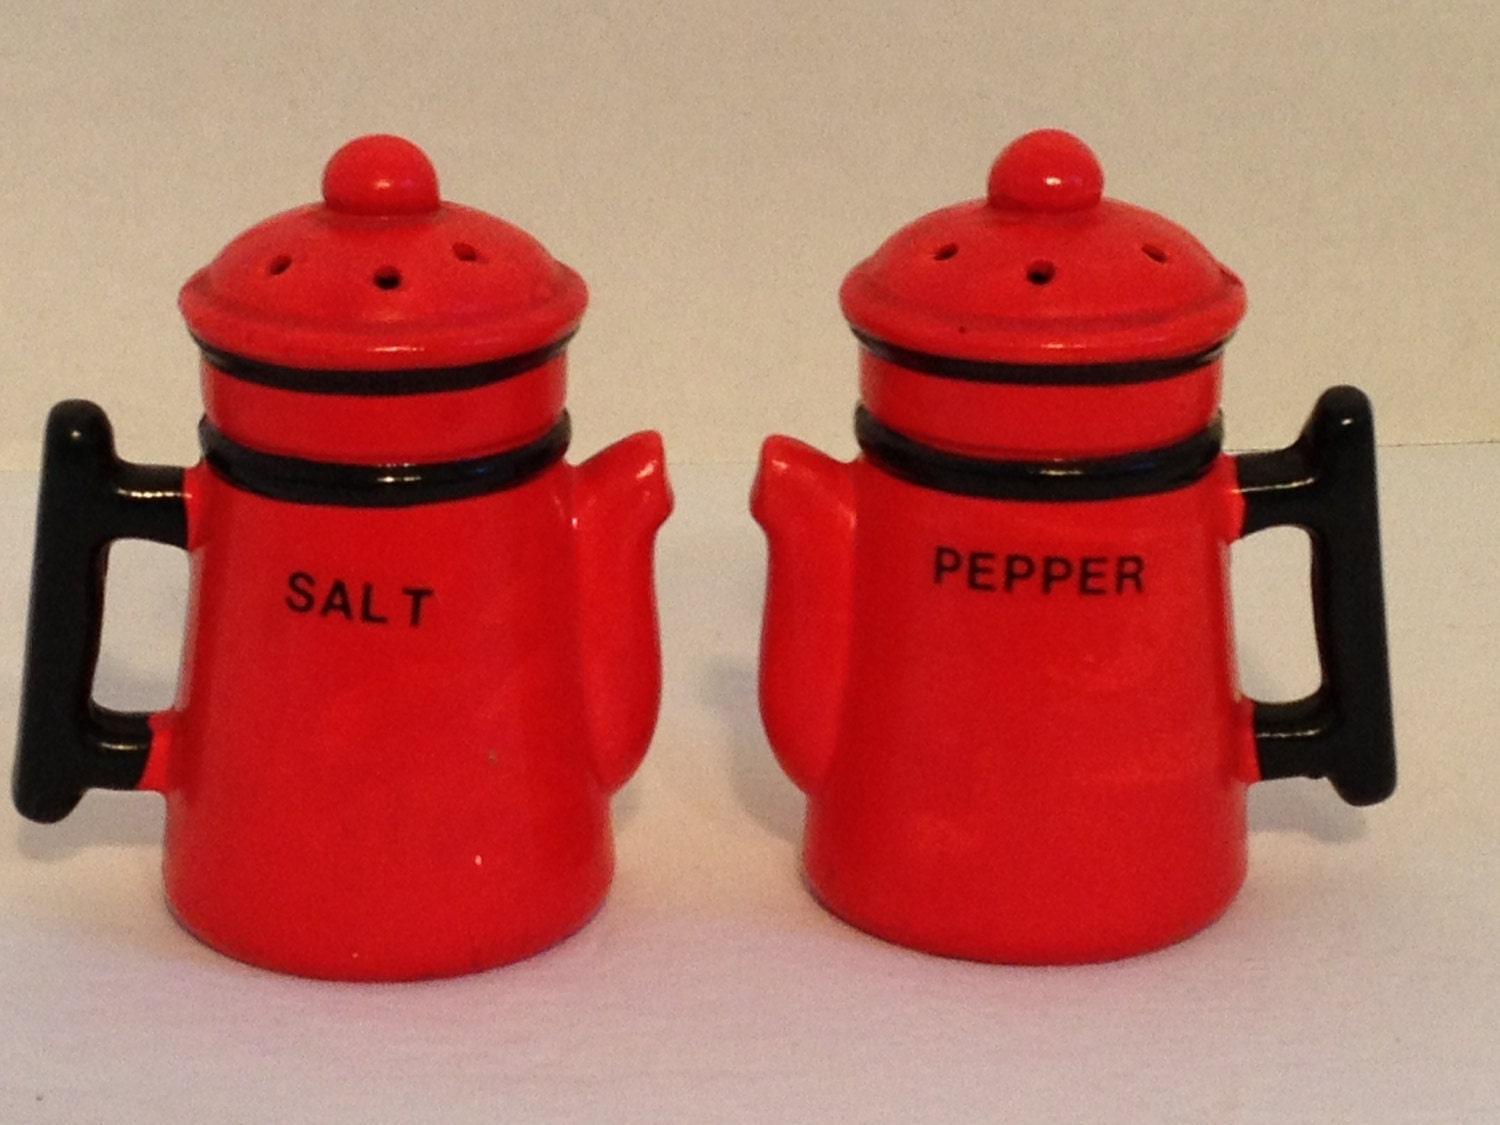 Cute Vintage Coffee Pot Salt And Pepper Shakers